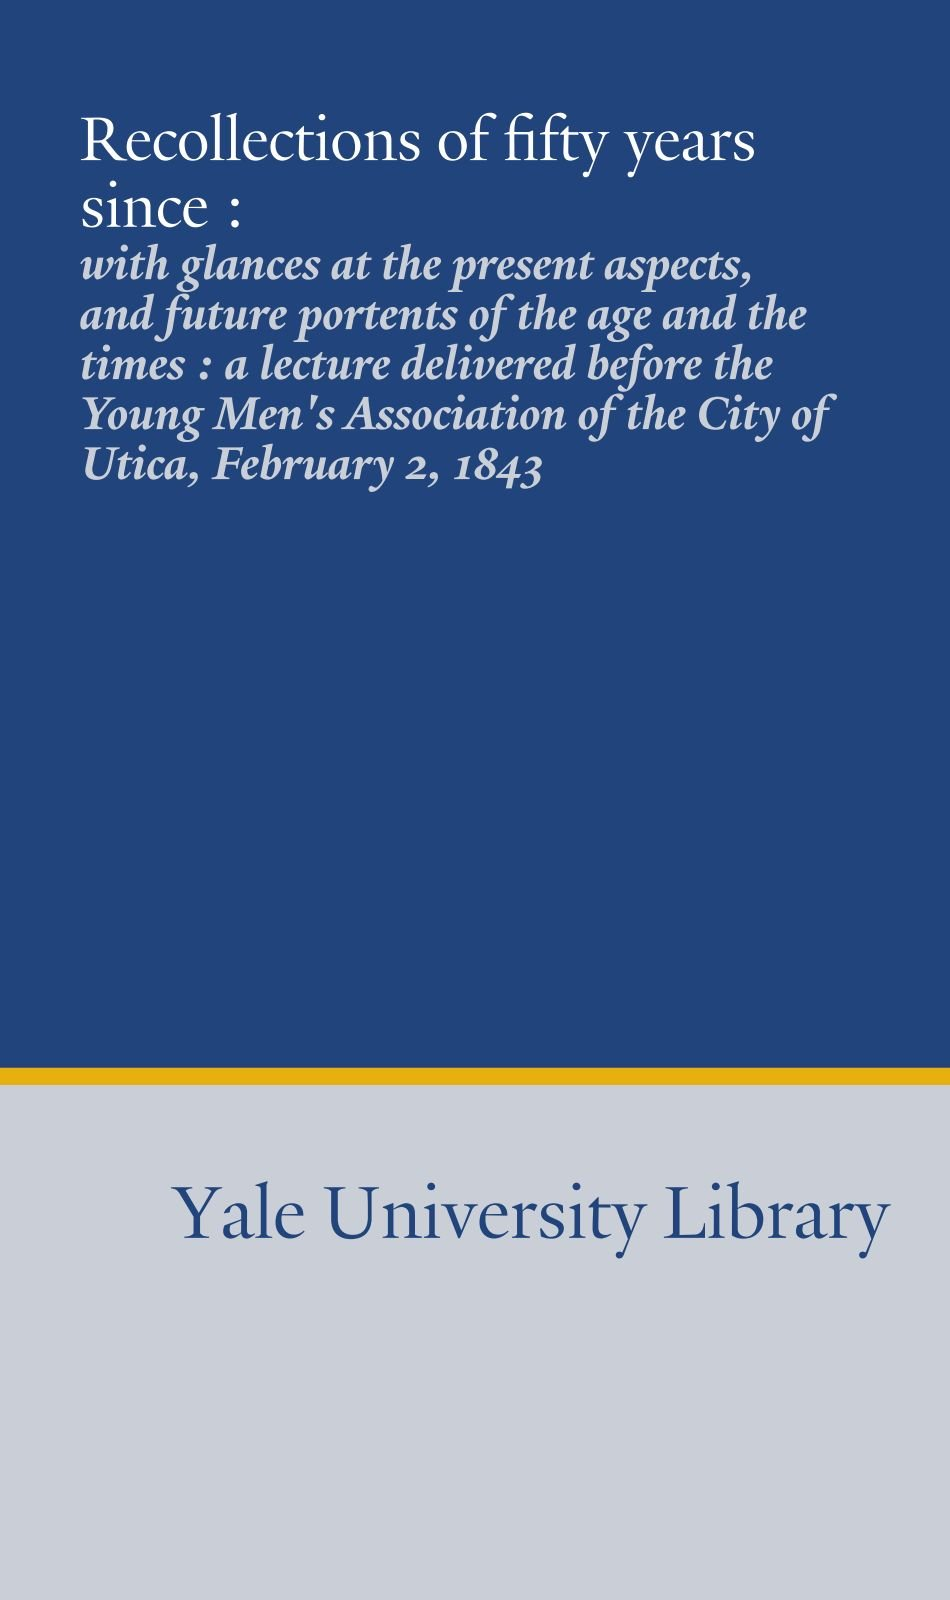 Read Online Recollections of fifty years since :: with glances at the present aspects, and future portents of the age and the times : a lecture delivered before ... of the City of Utica, February 2, 1843 ebook